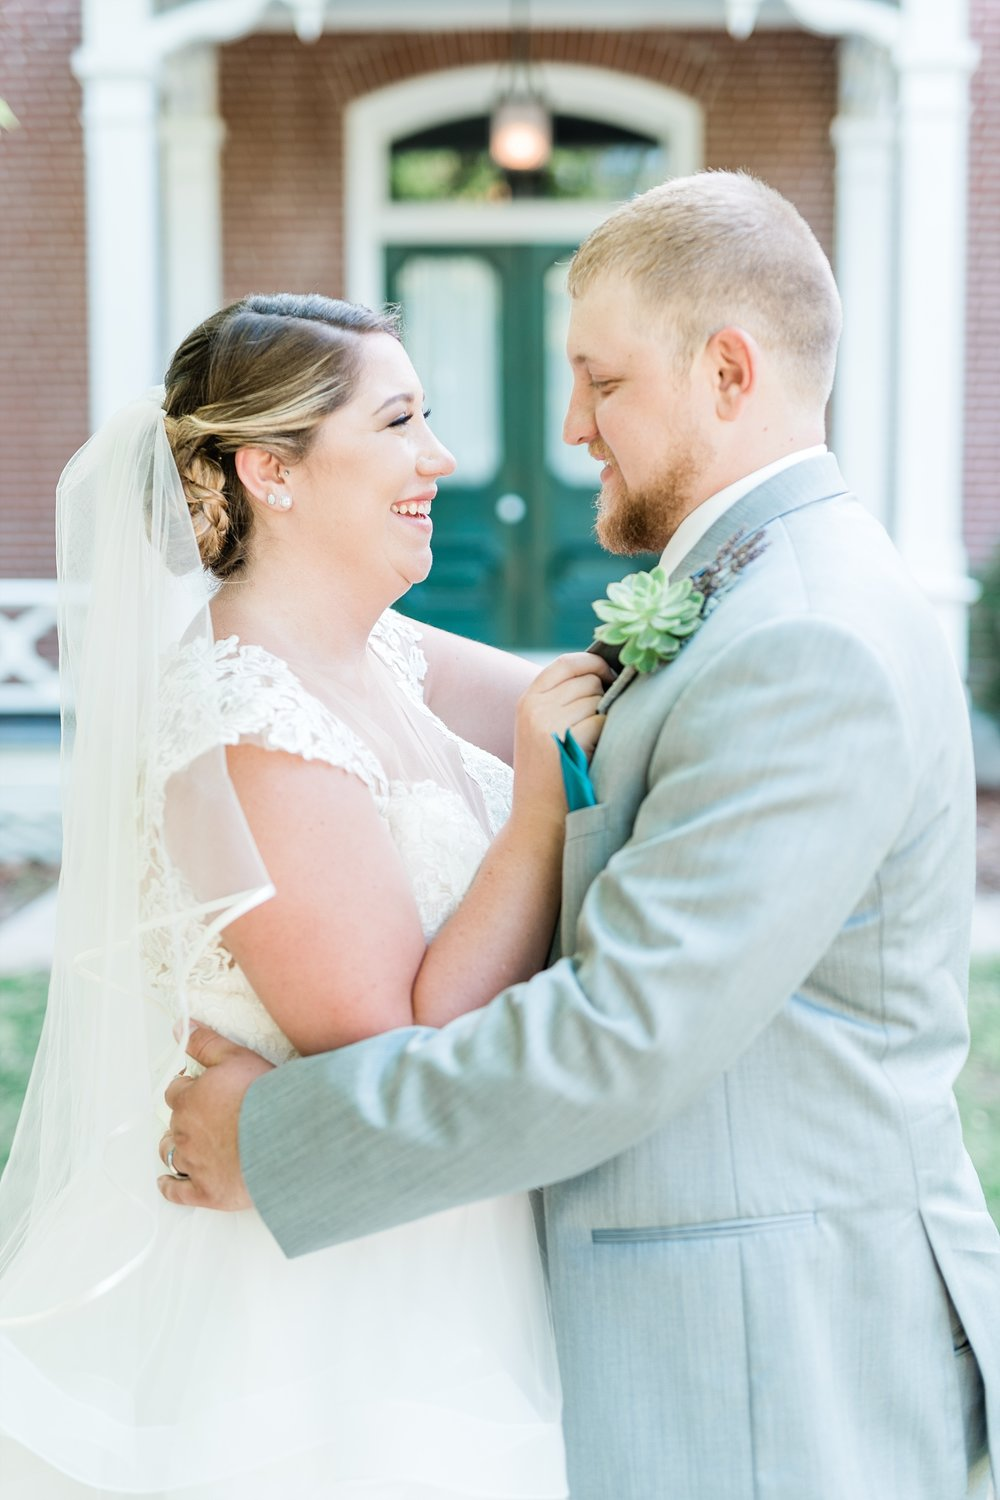 Baurichter Wedding at Stoney Creek Inn Columbia Missouri by Kelsi Kliethermes Photography_0022.jpg